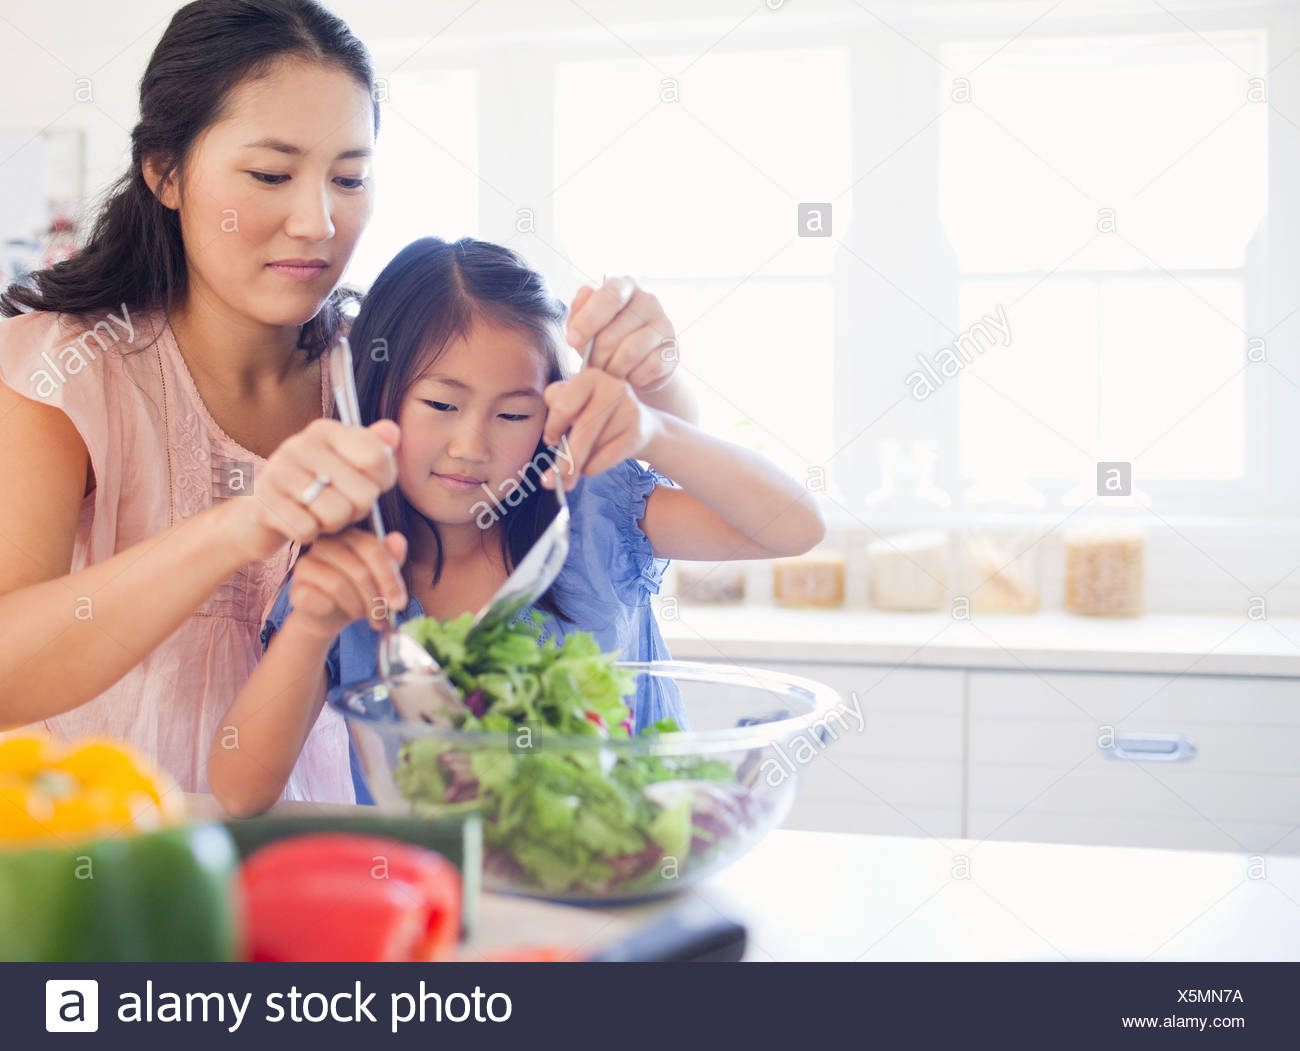 A mother and daughter toss a salad together - Stock Image